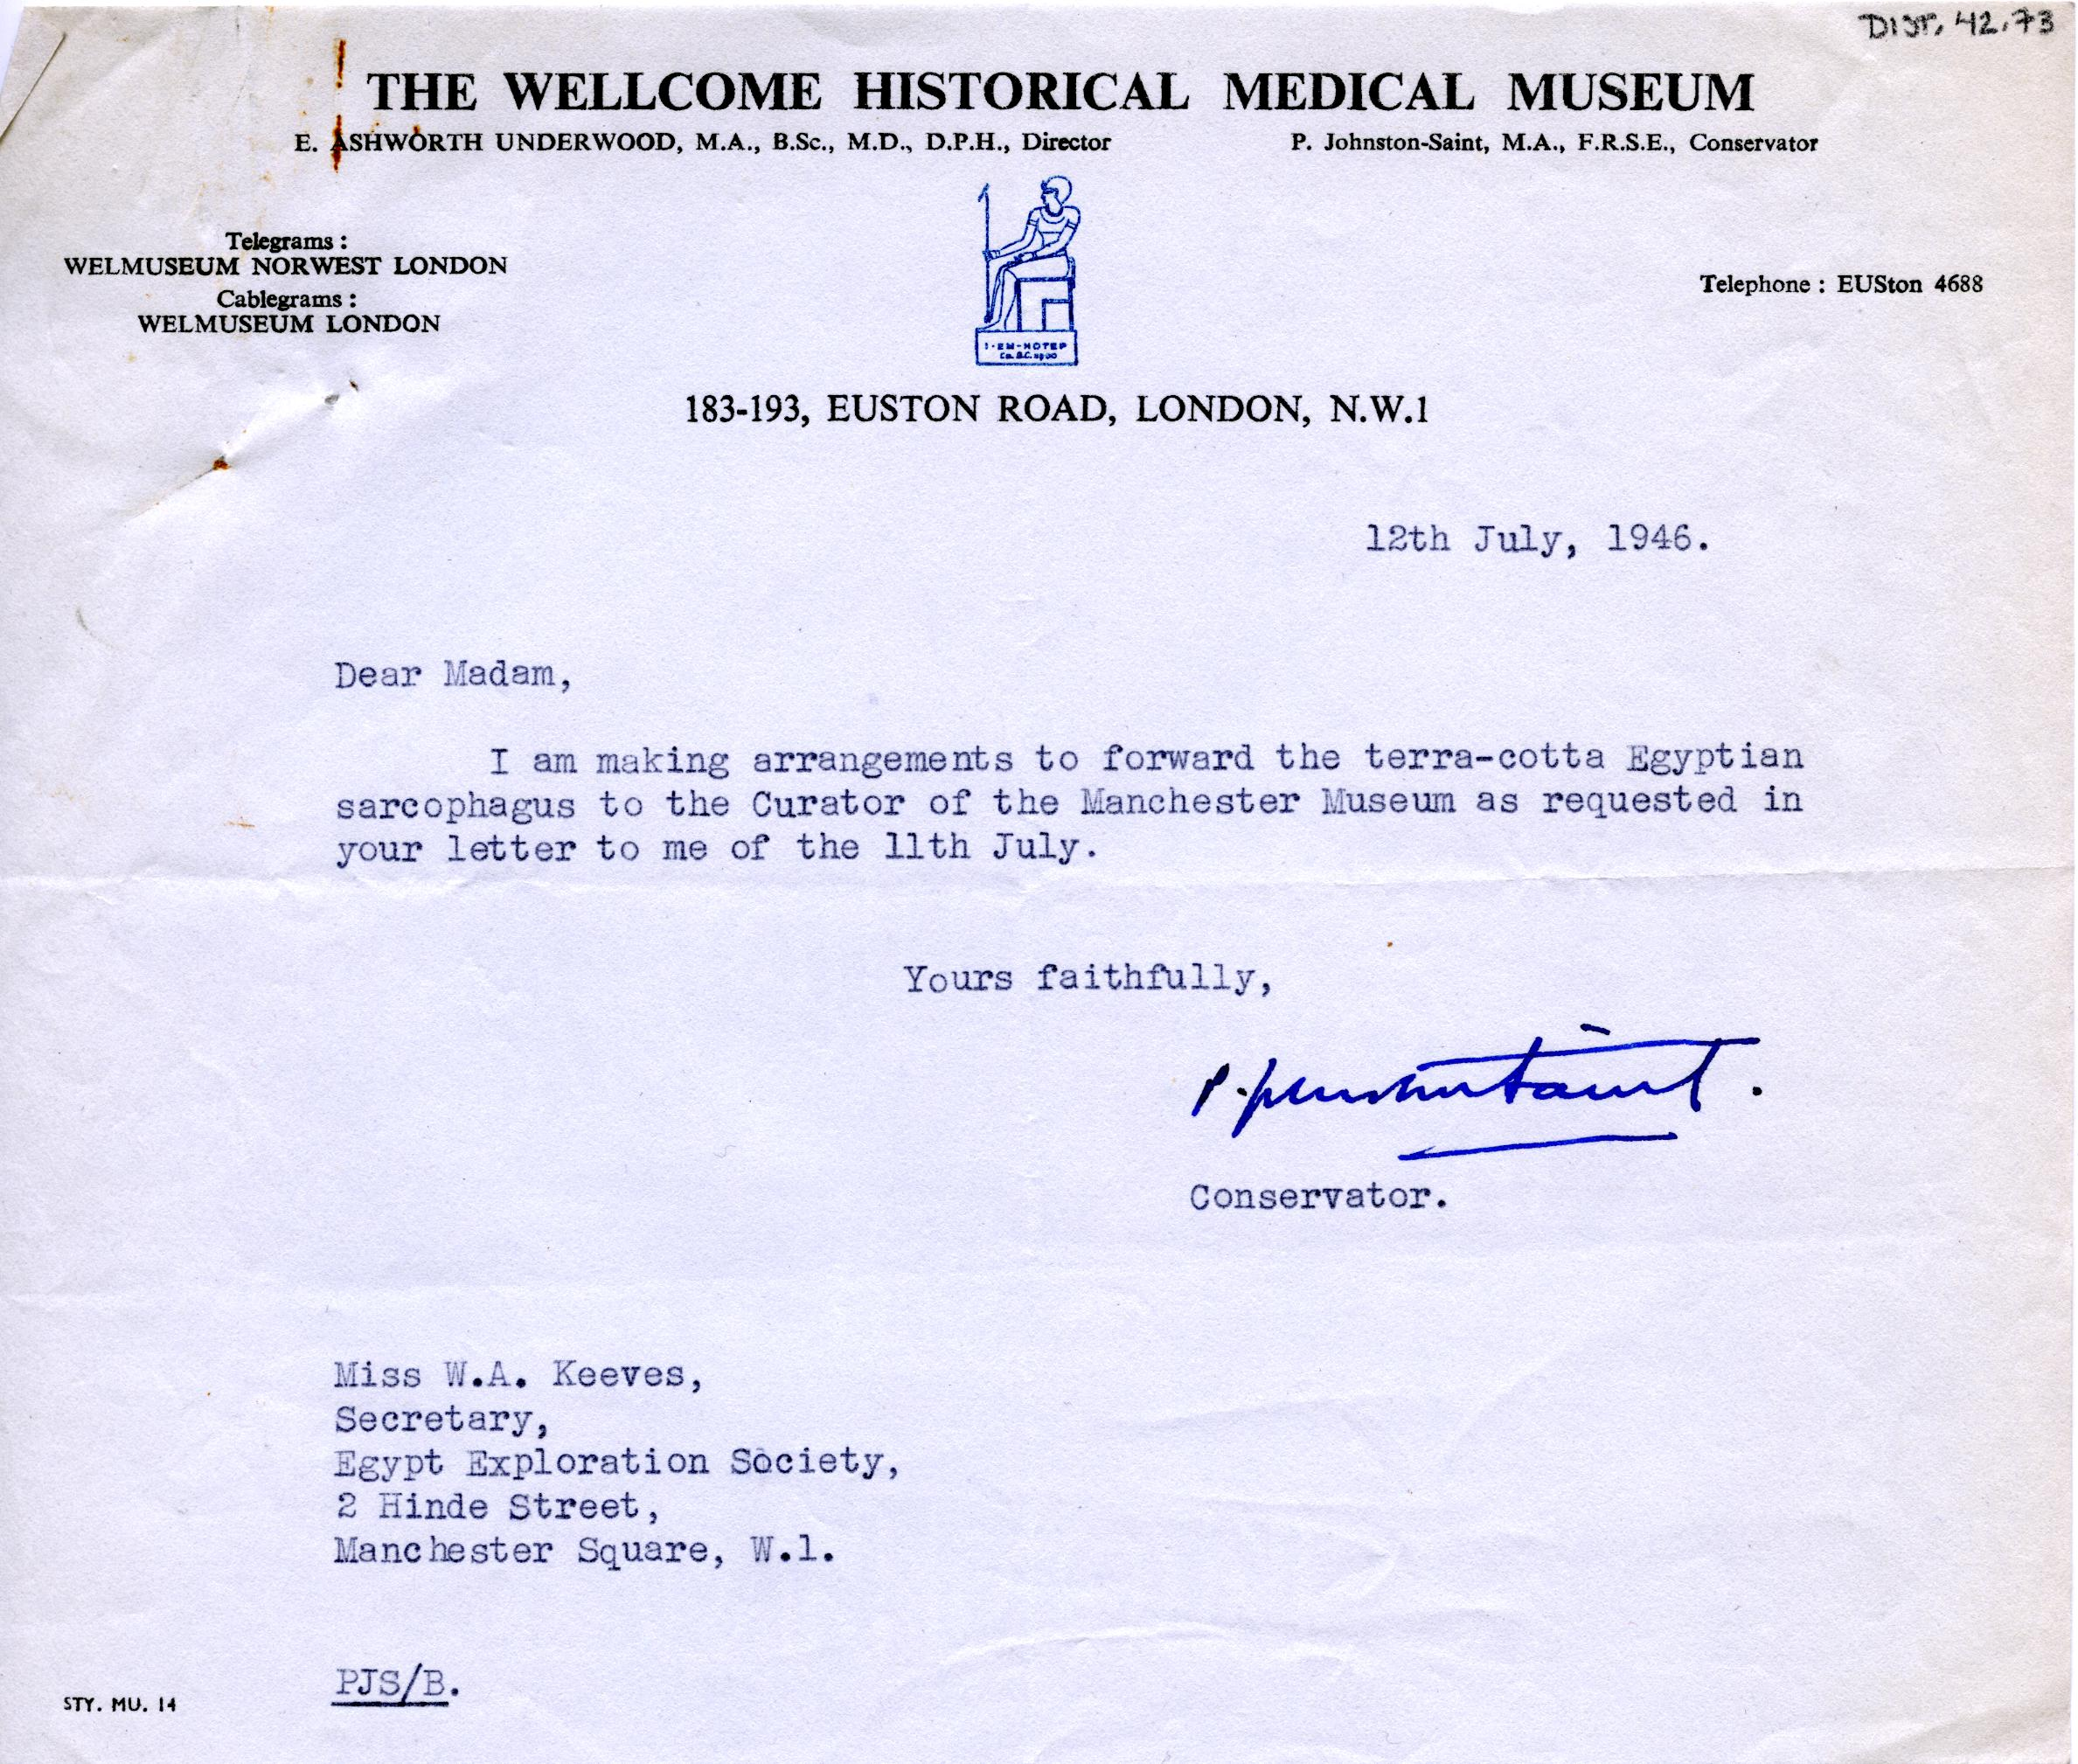 1922-71 Miscellaneous correspondence with museums DIST.42.73